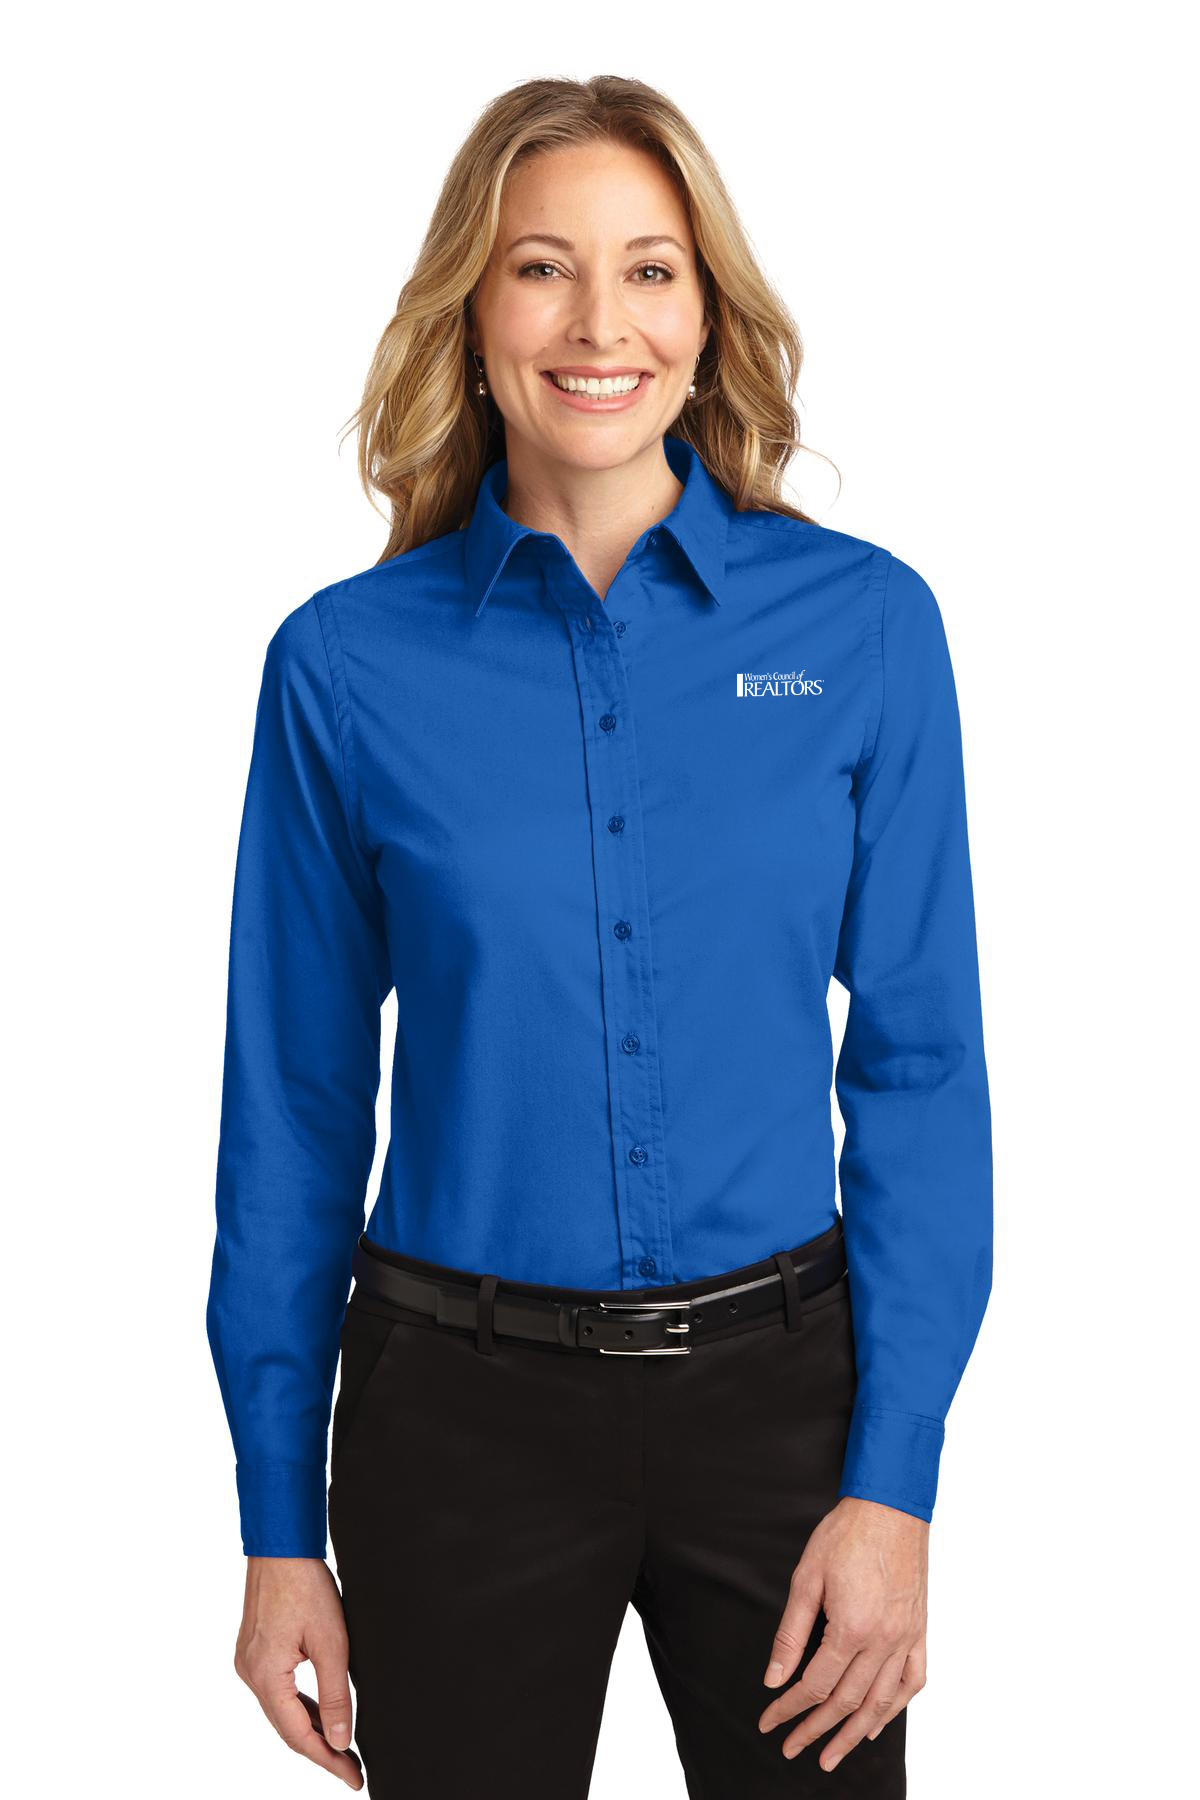 Ladies Easy Care Long Sleeve Twill Shirt Twills,ButtonDowns,Dress,Shirts,Collars,Tall,Woven